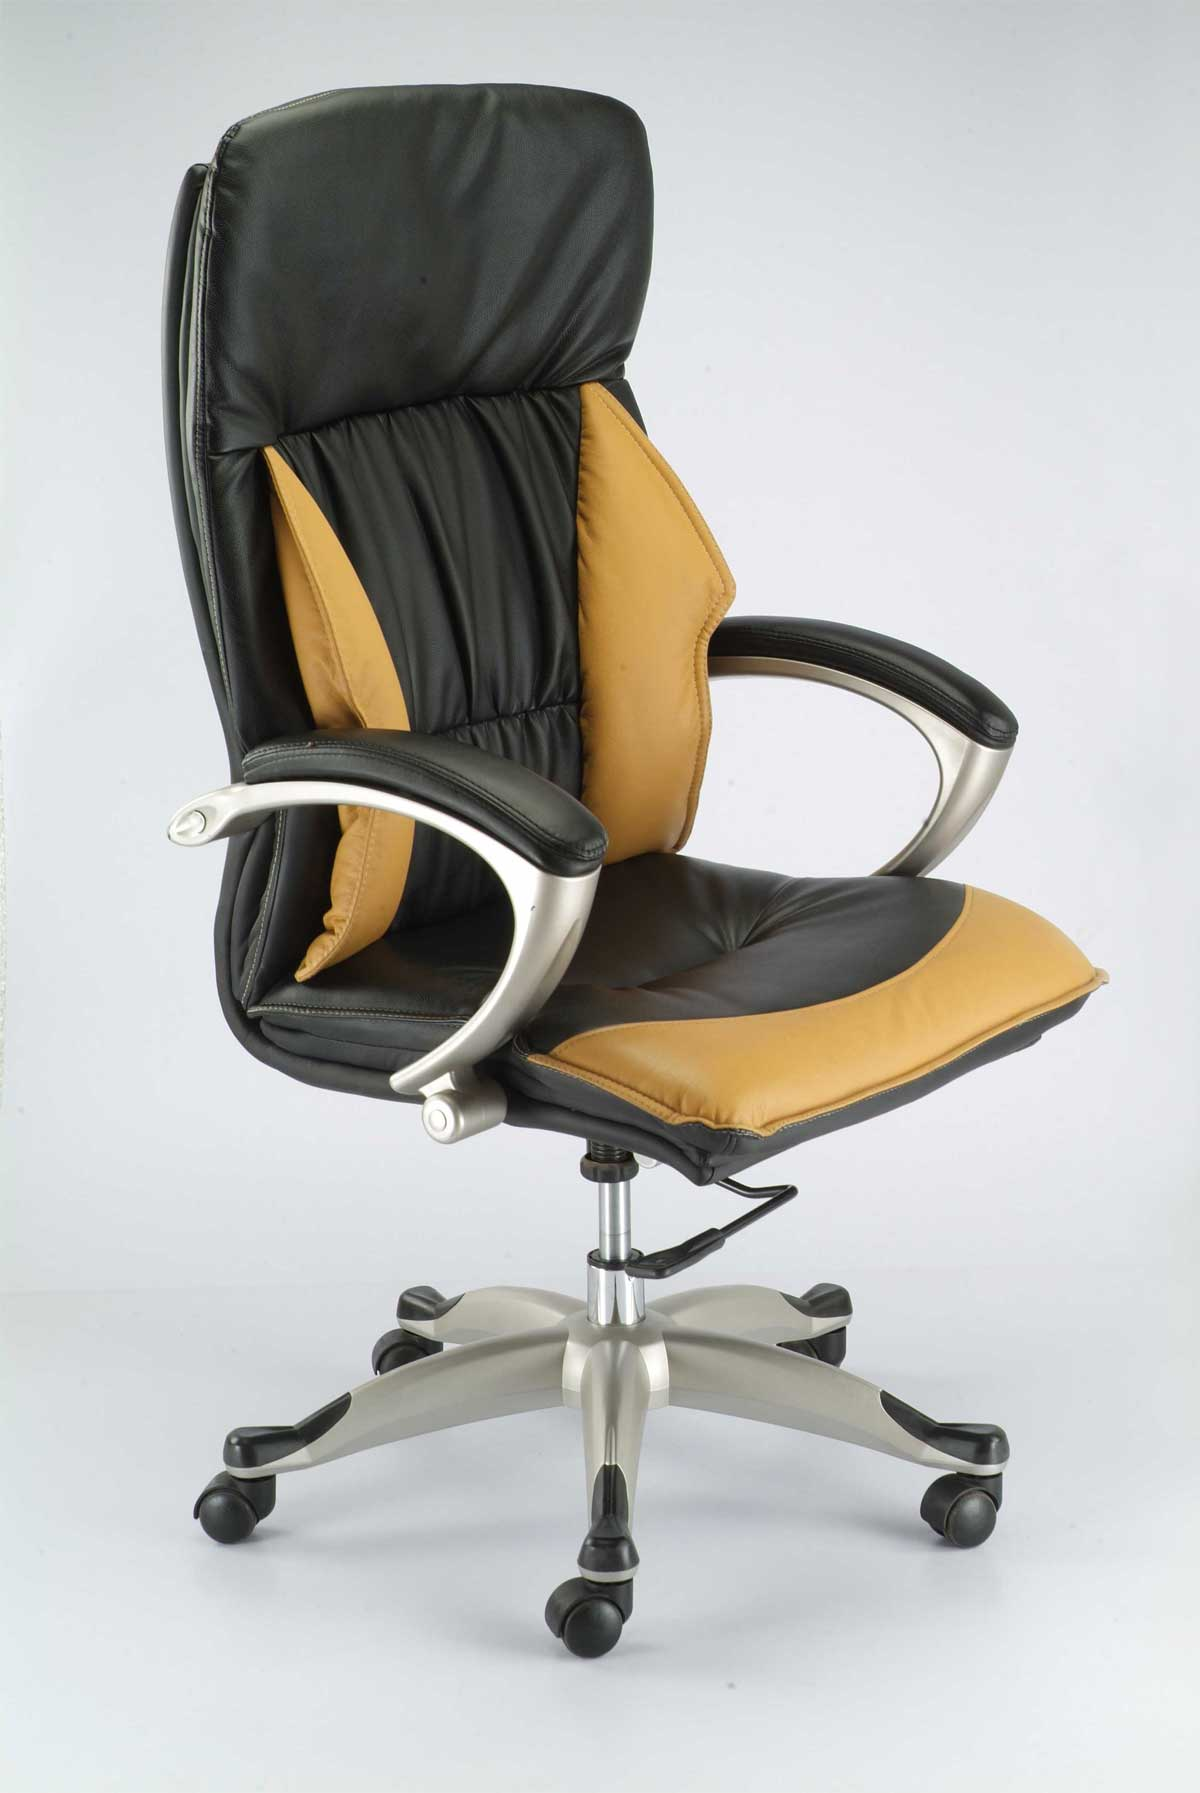 best ergonomic chairs in india bedroom chair natural office delhi gurgaon new